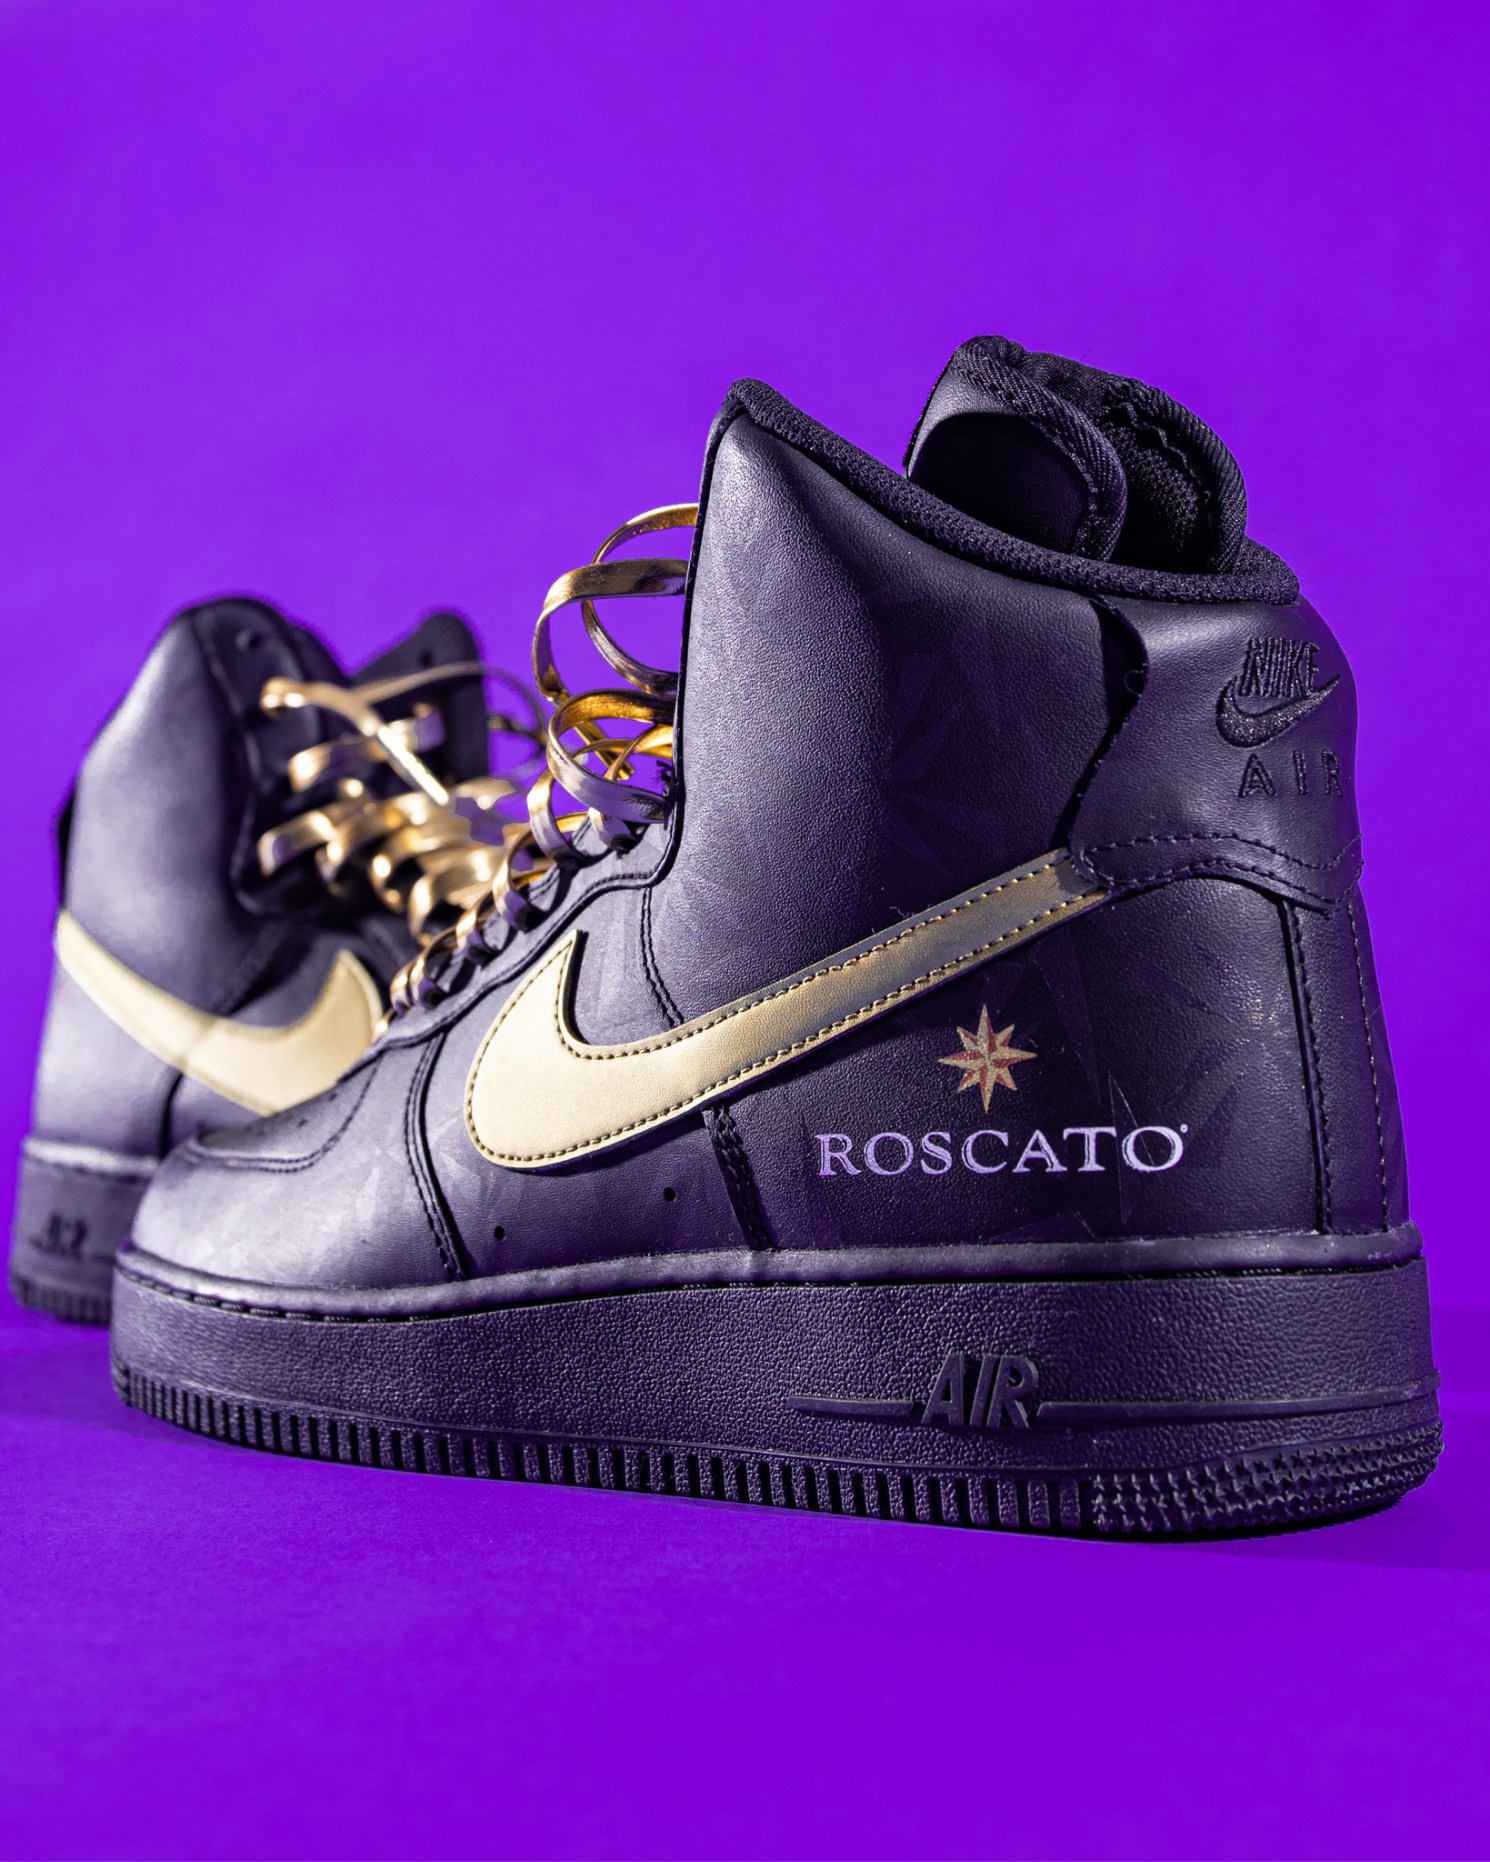 Roscato_Sneakers_29-squashed